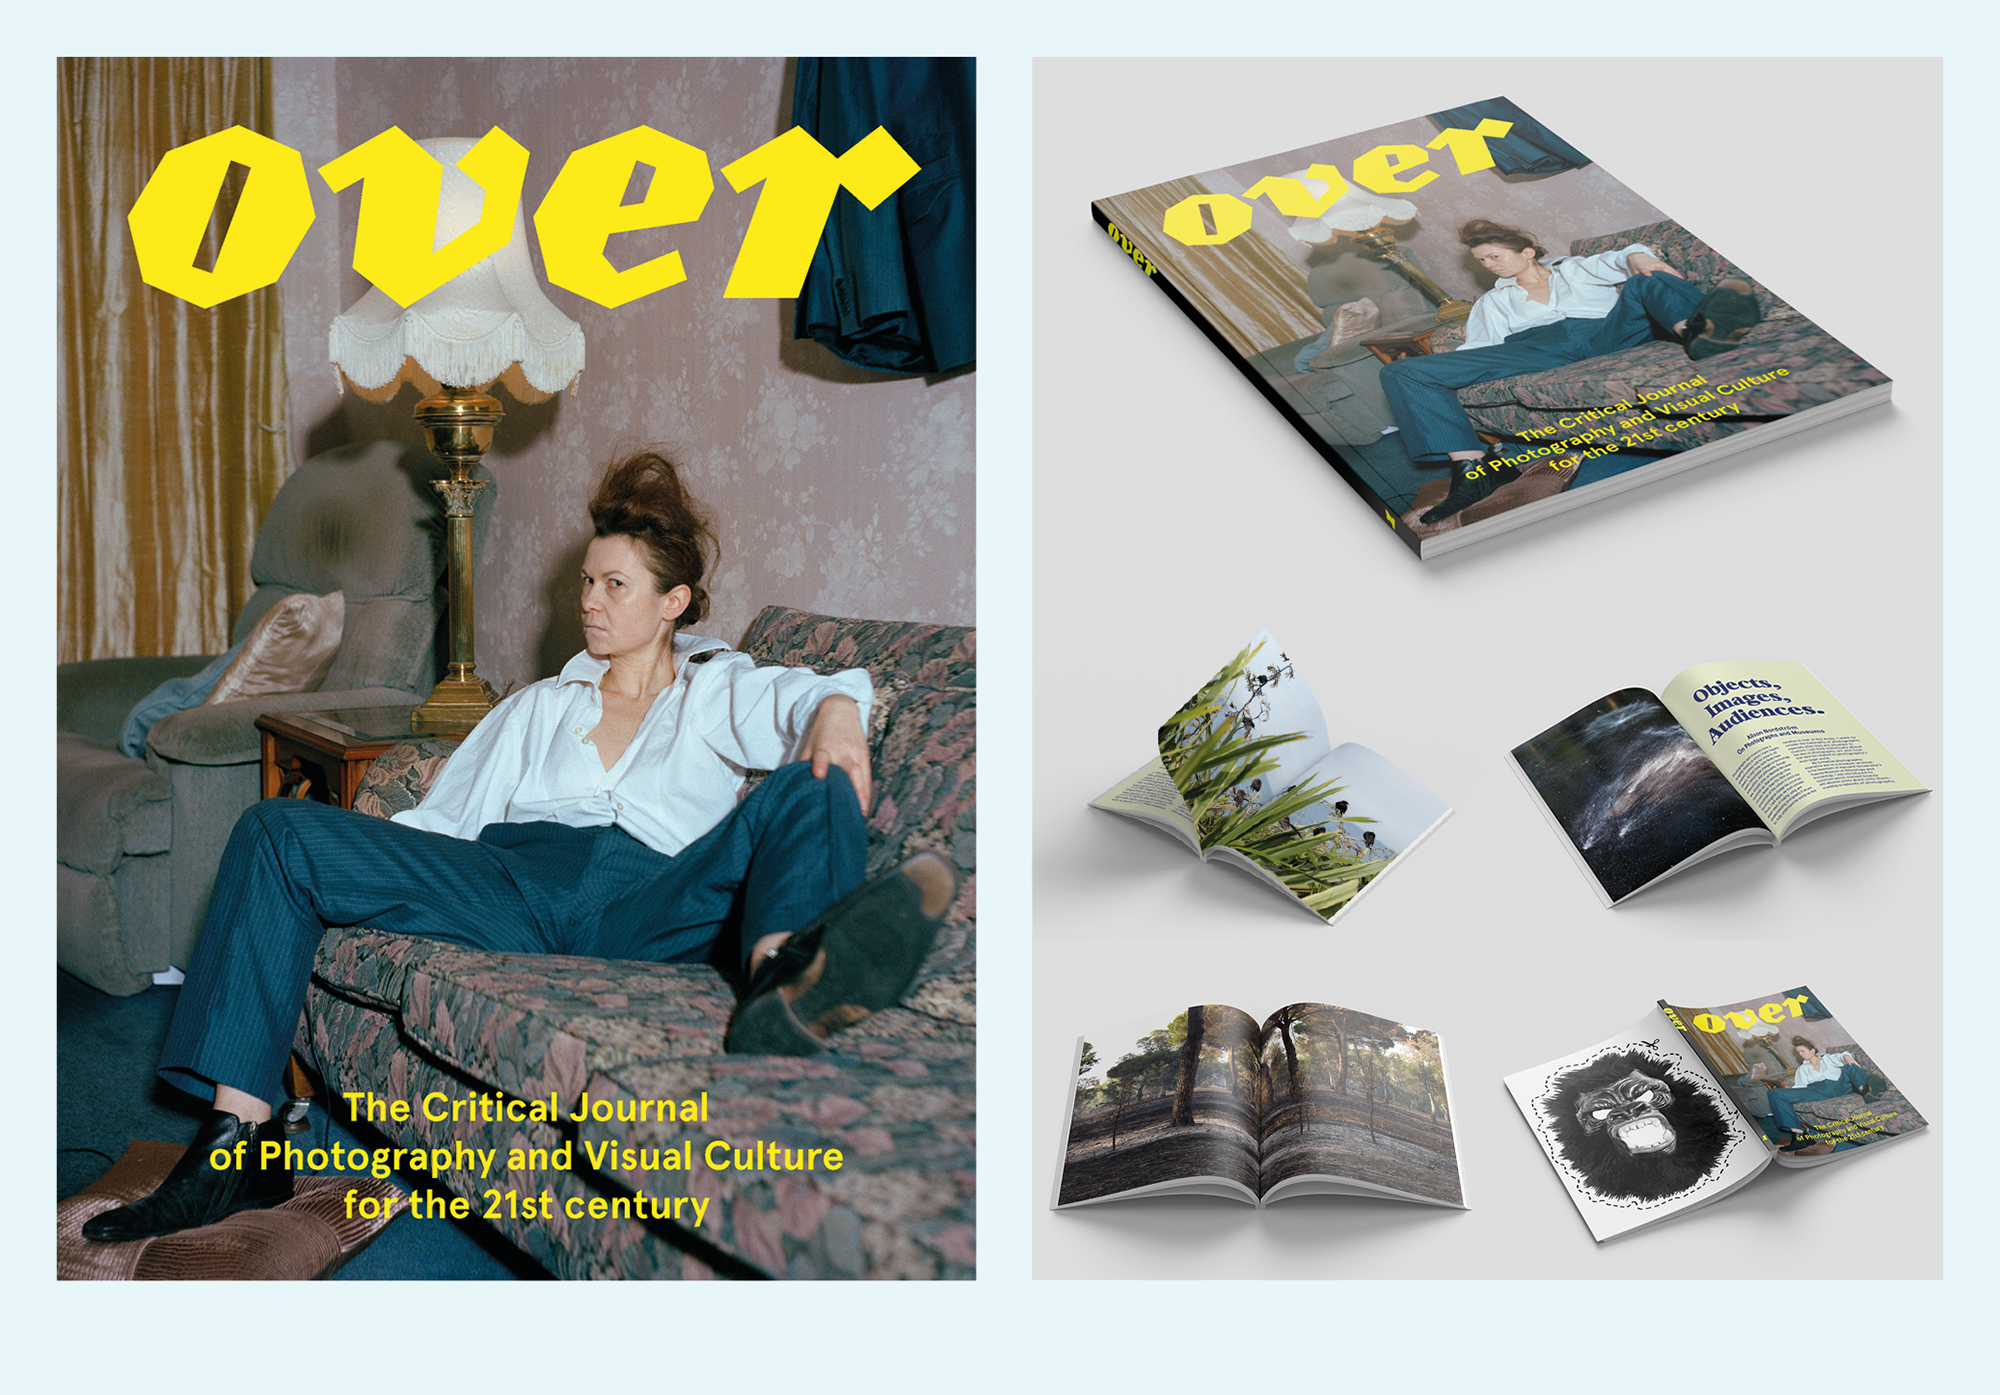 Cover image: OVER Journal issue 1